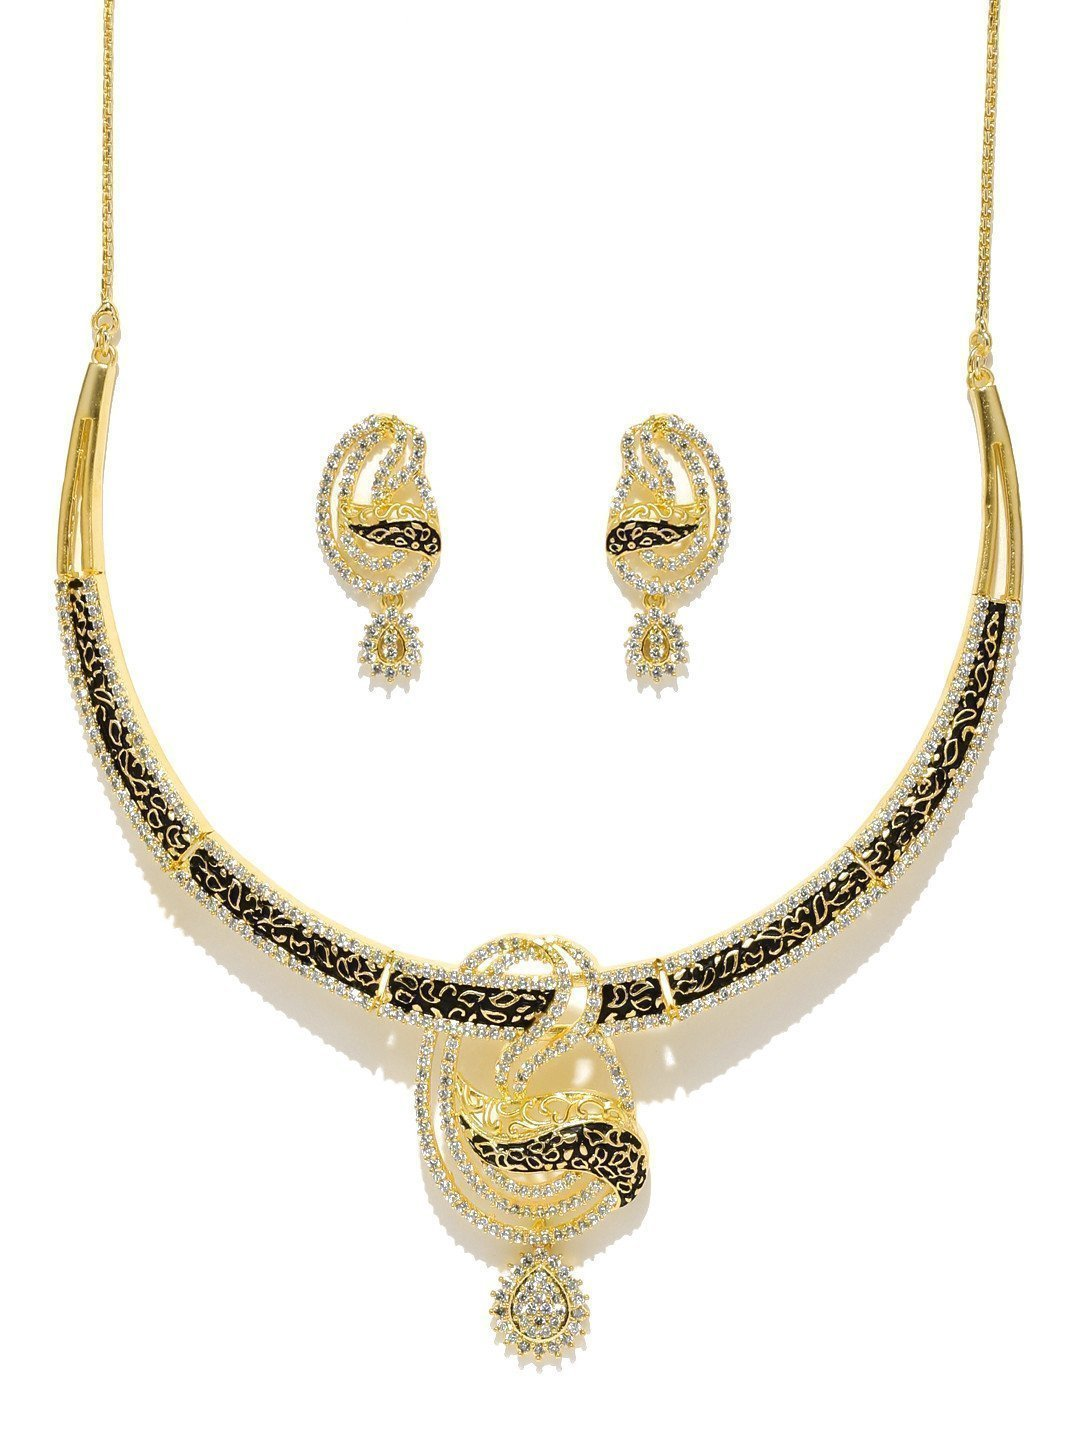 Finely Detailed Cubic Zirconia Necklace Set - Zpfk5853